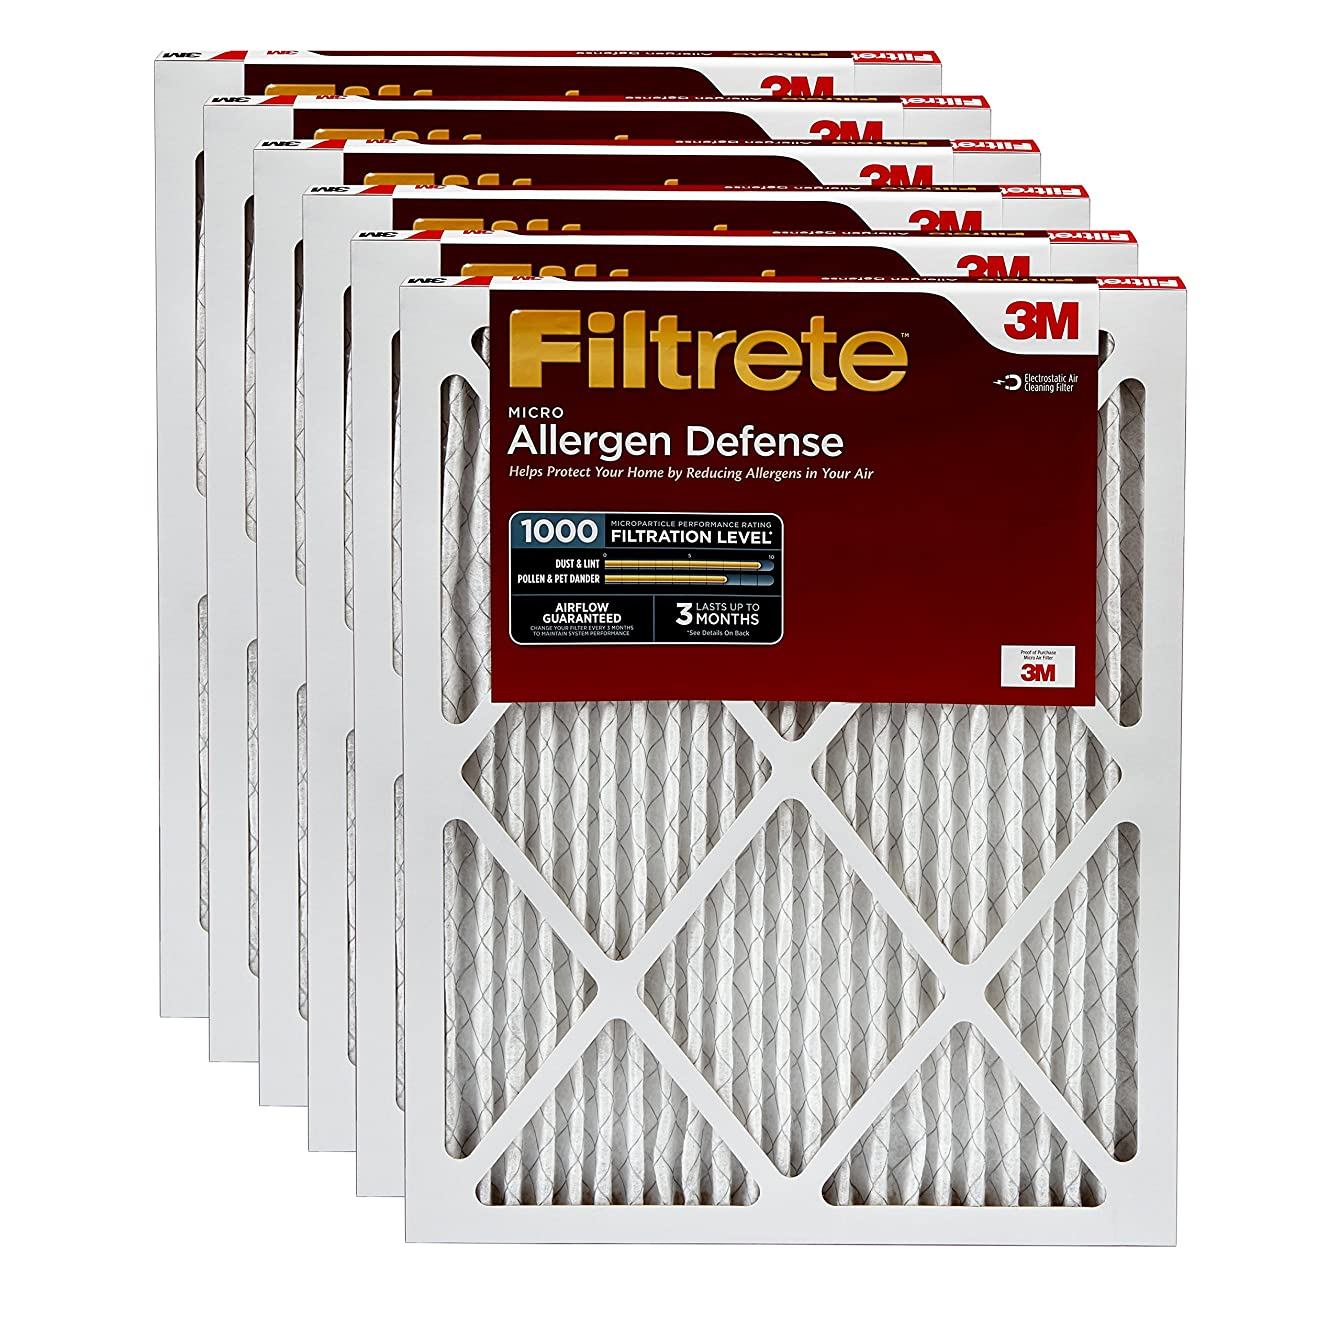 Filtrete 24x24x1, AC Furnace Air Filter, MPR 1000, Micro Allergen Defense, 6-Pack